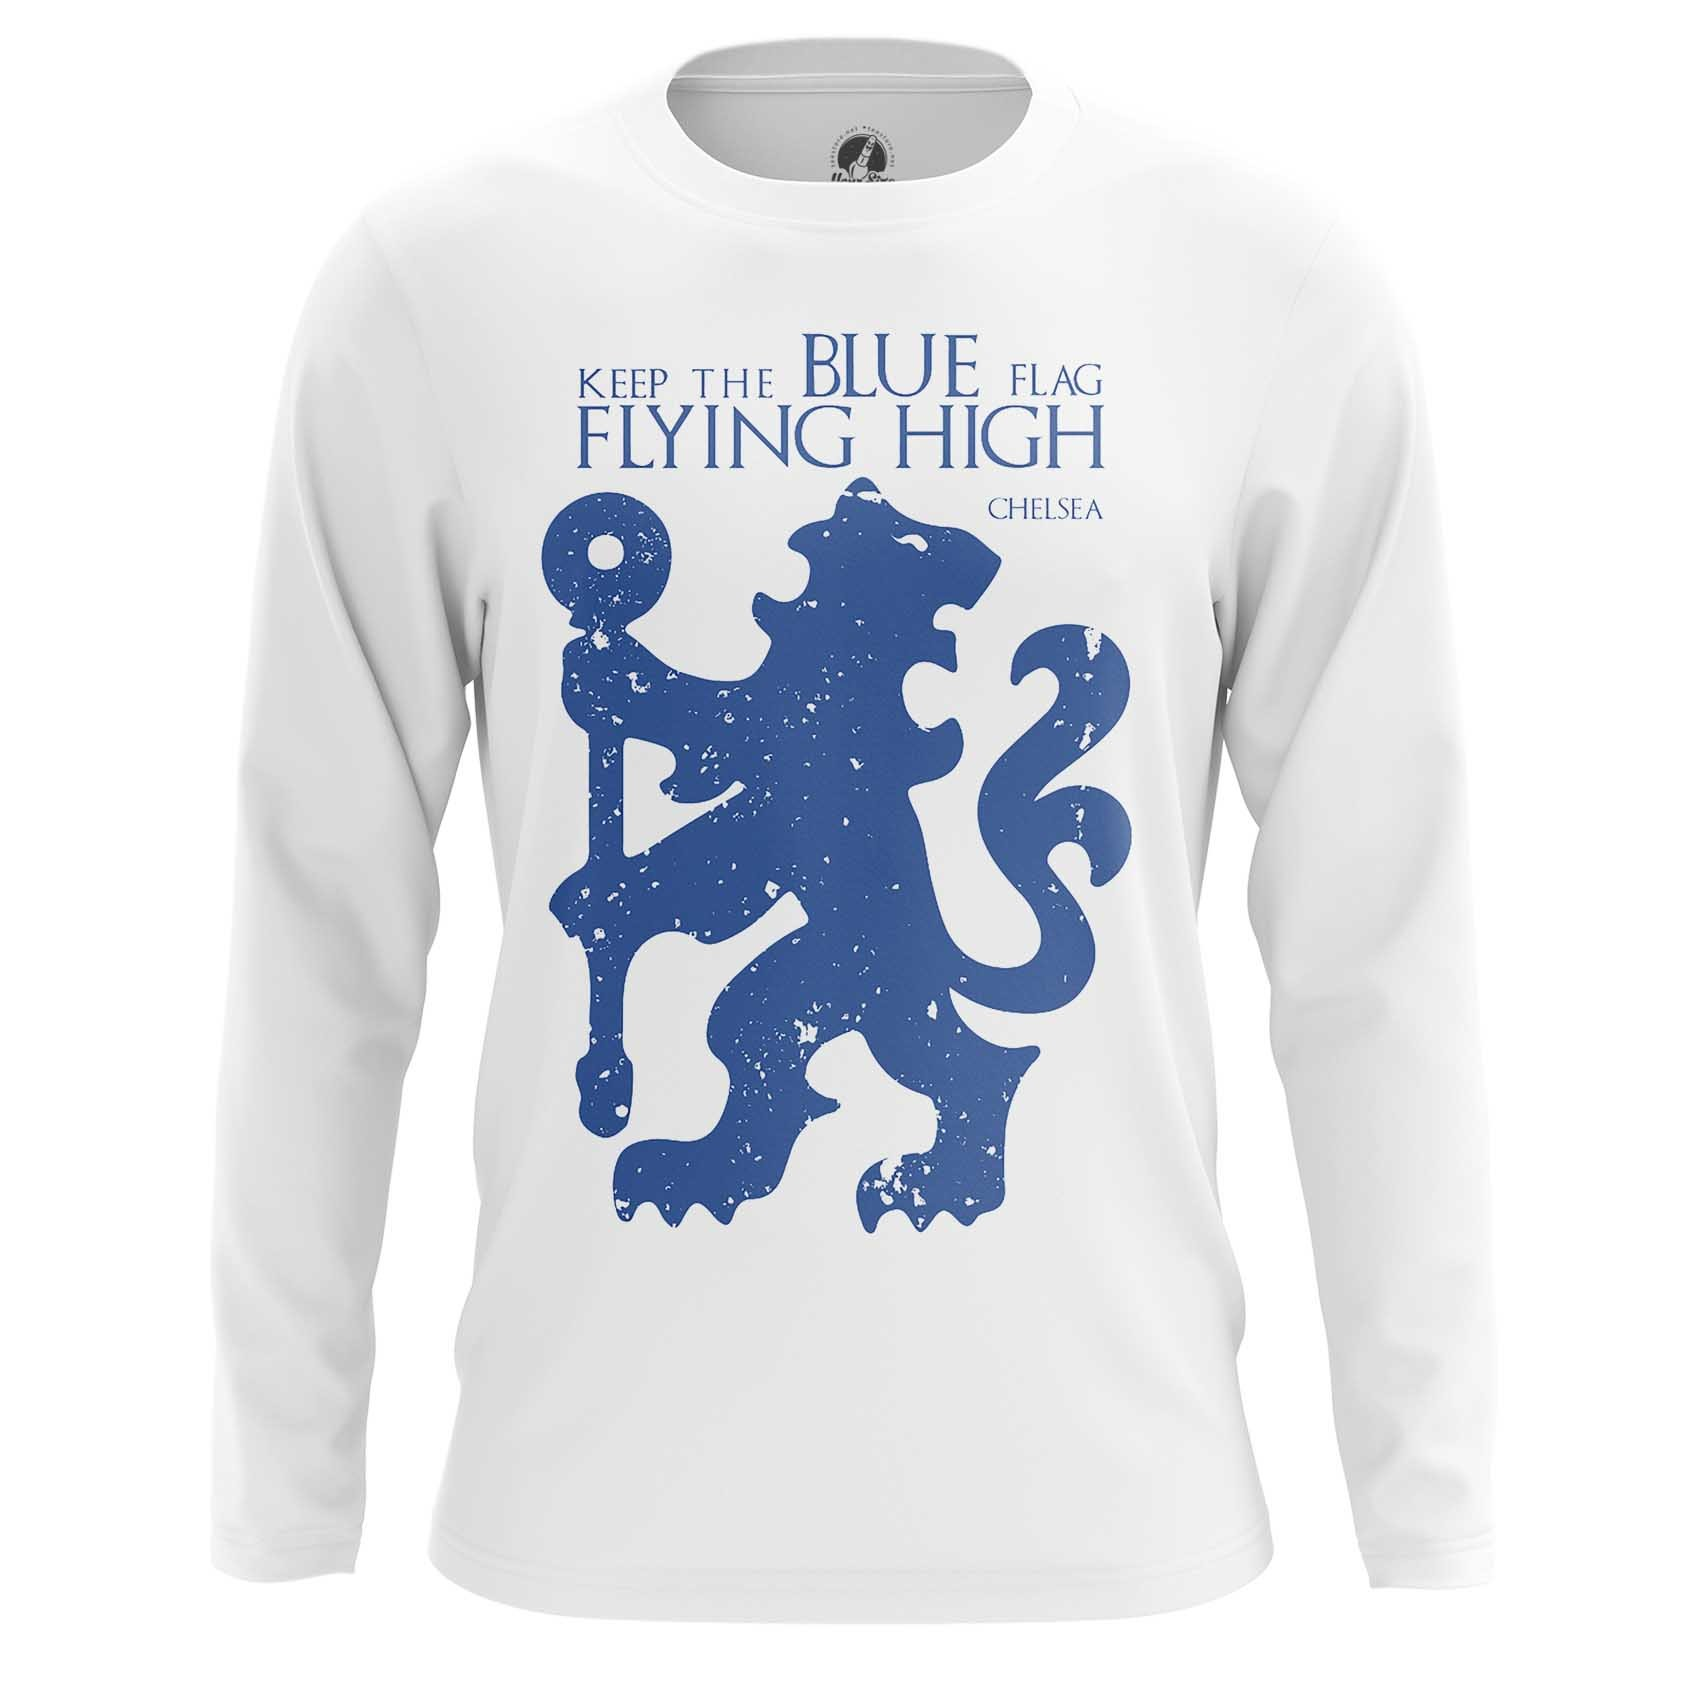 Collectibles Long Sleeve Chelsea Fc Blue